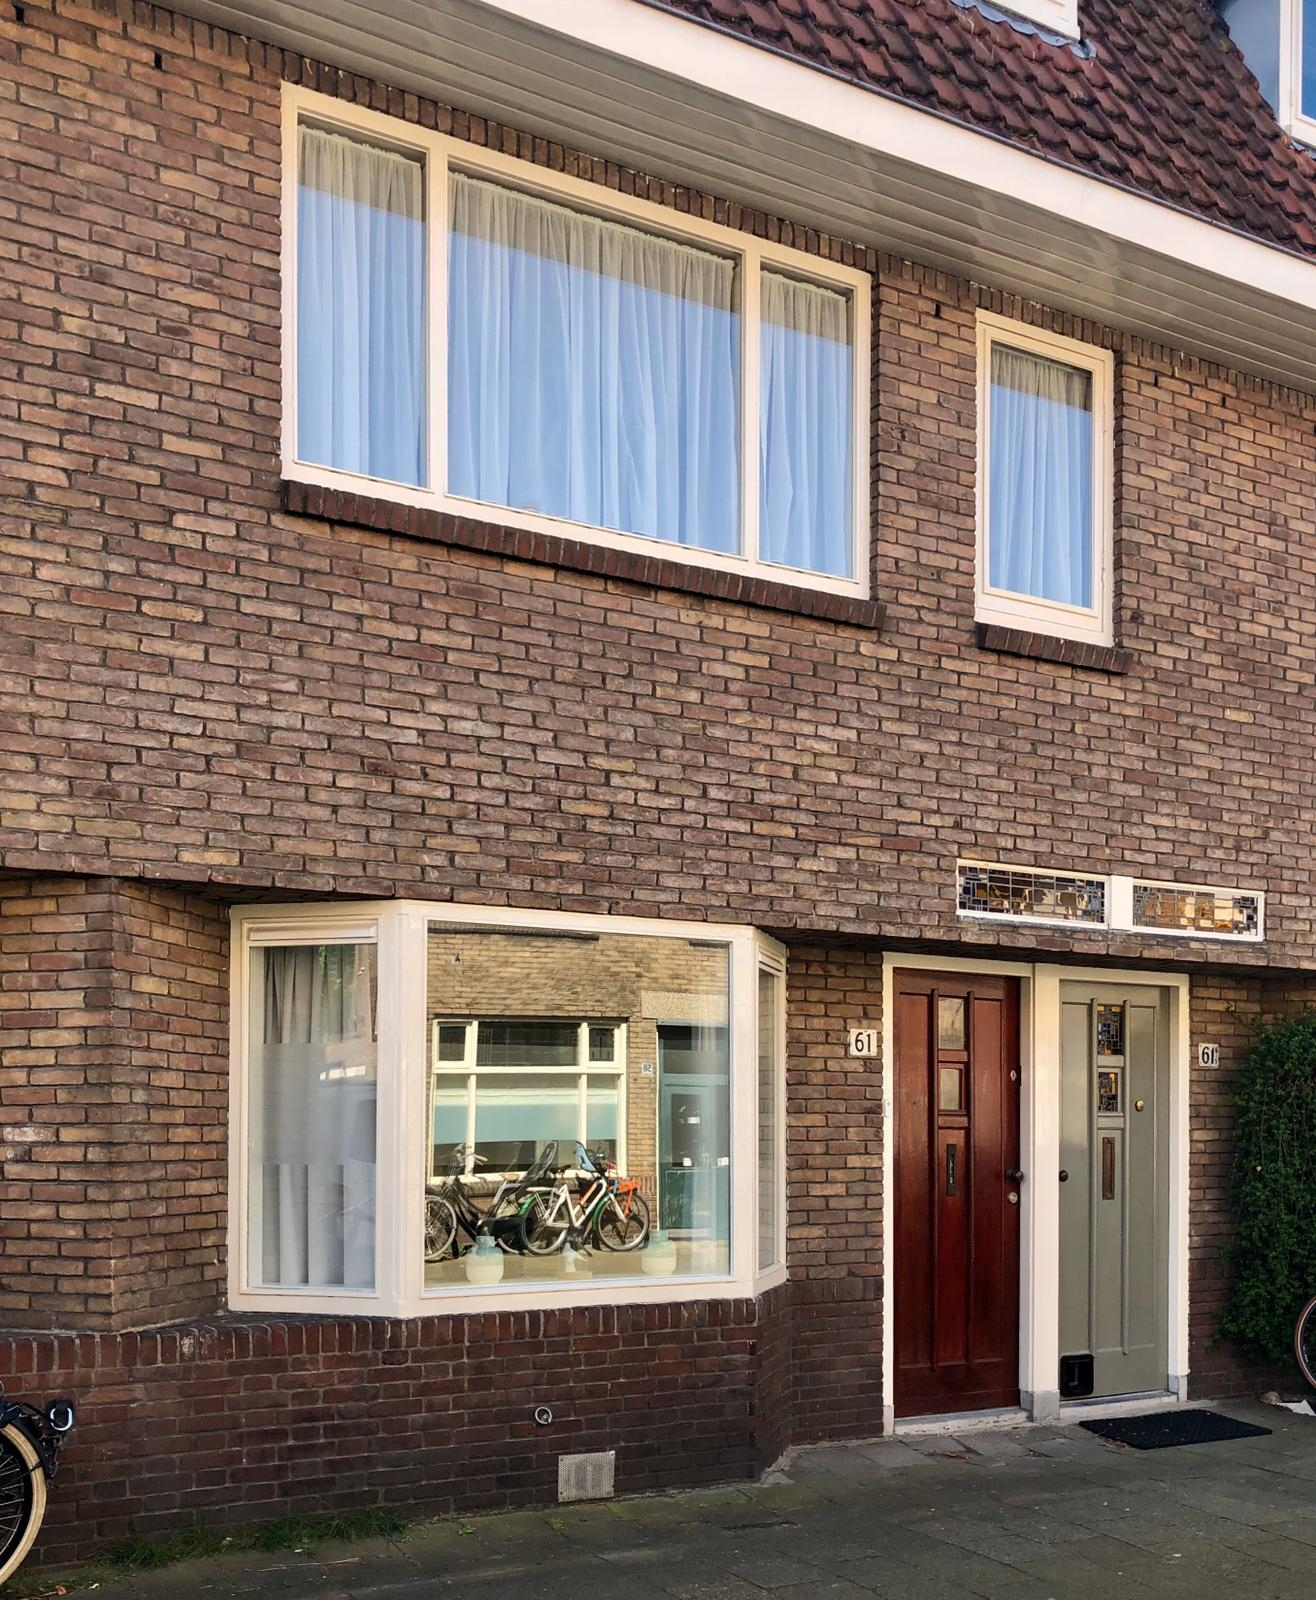 Jacob Van Der Borchstraat 61